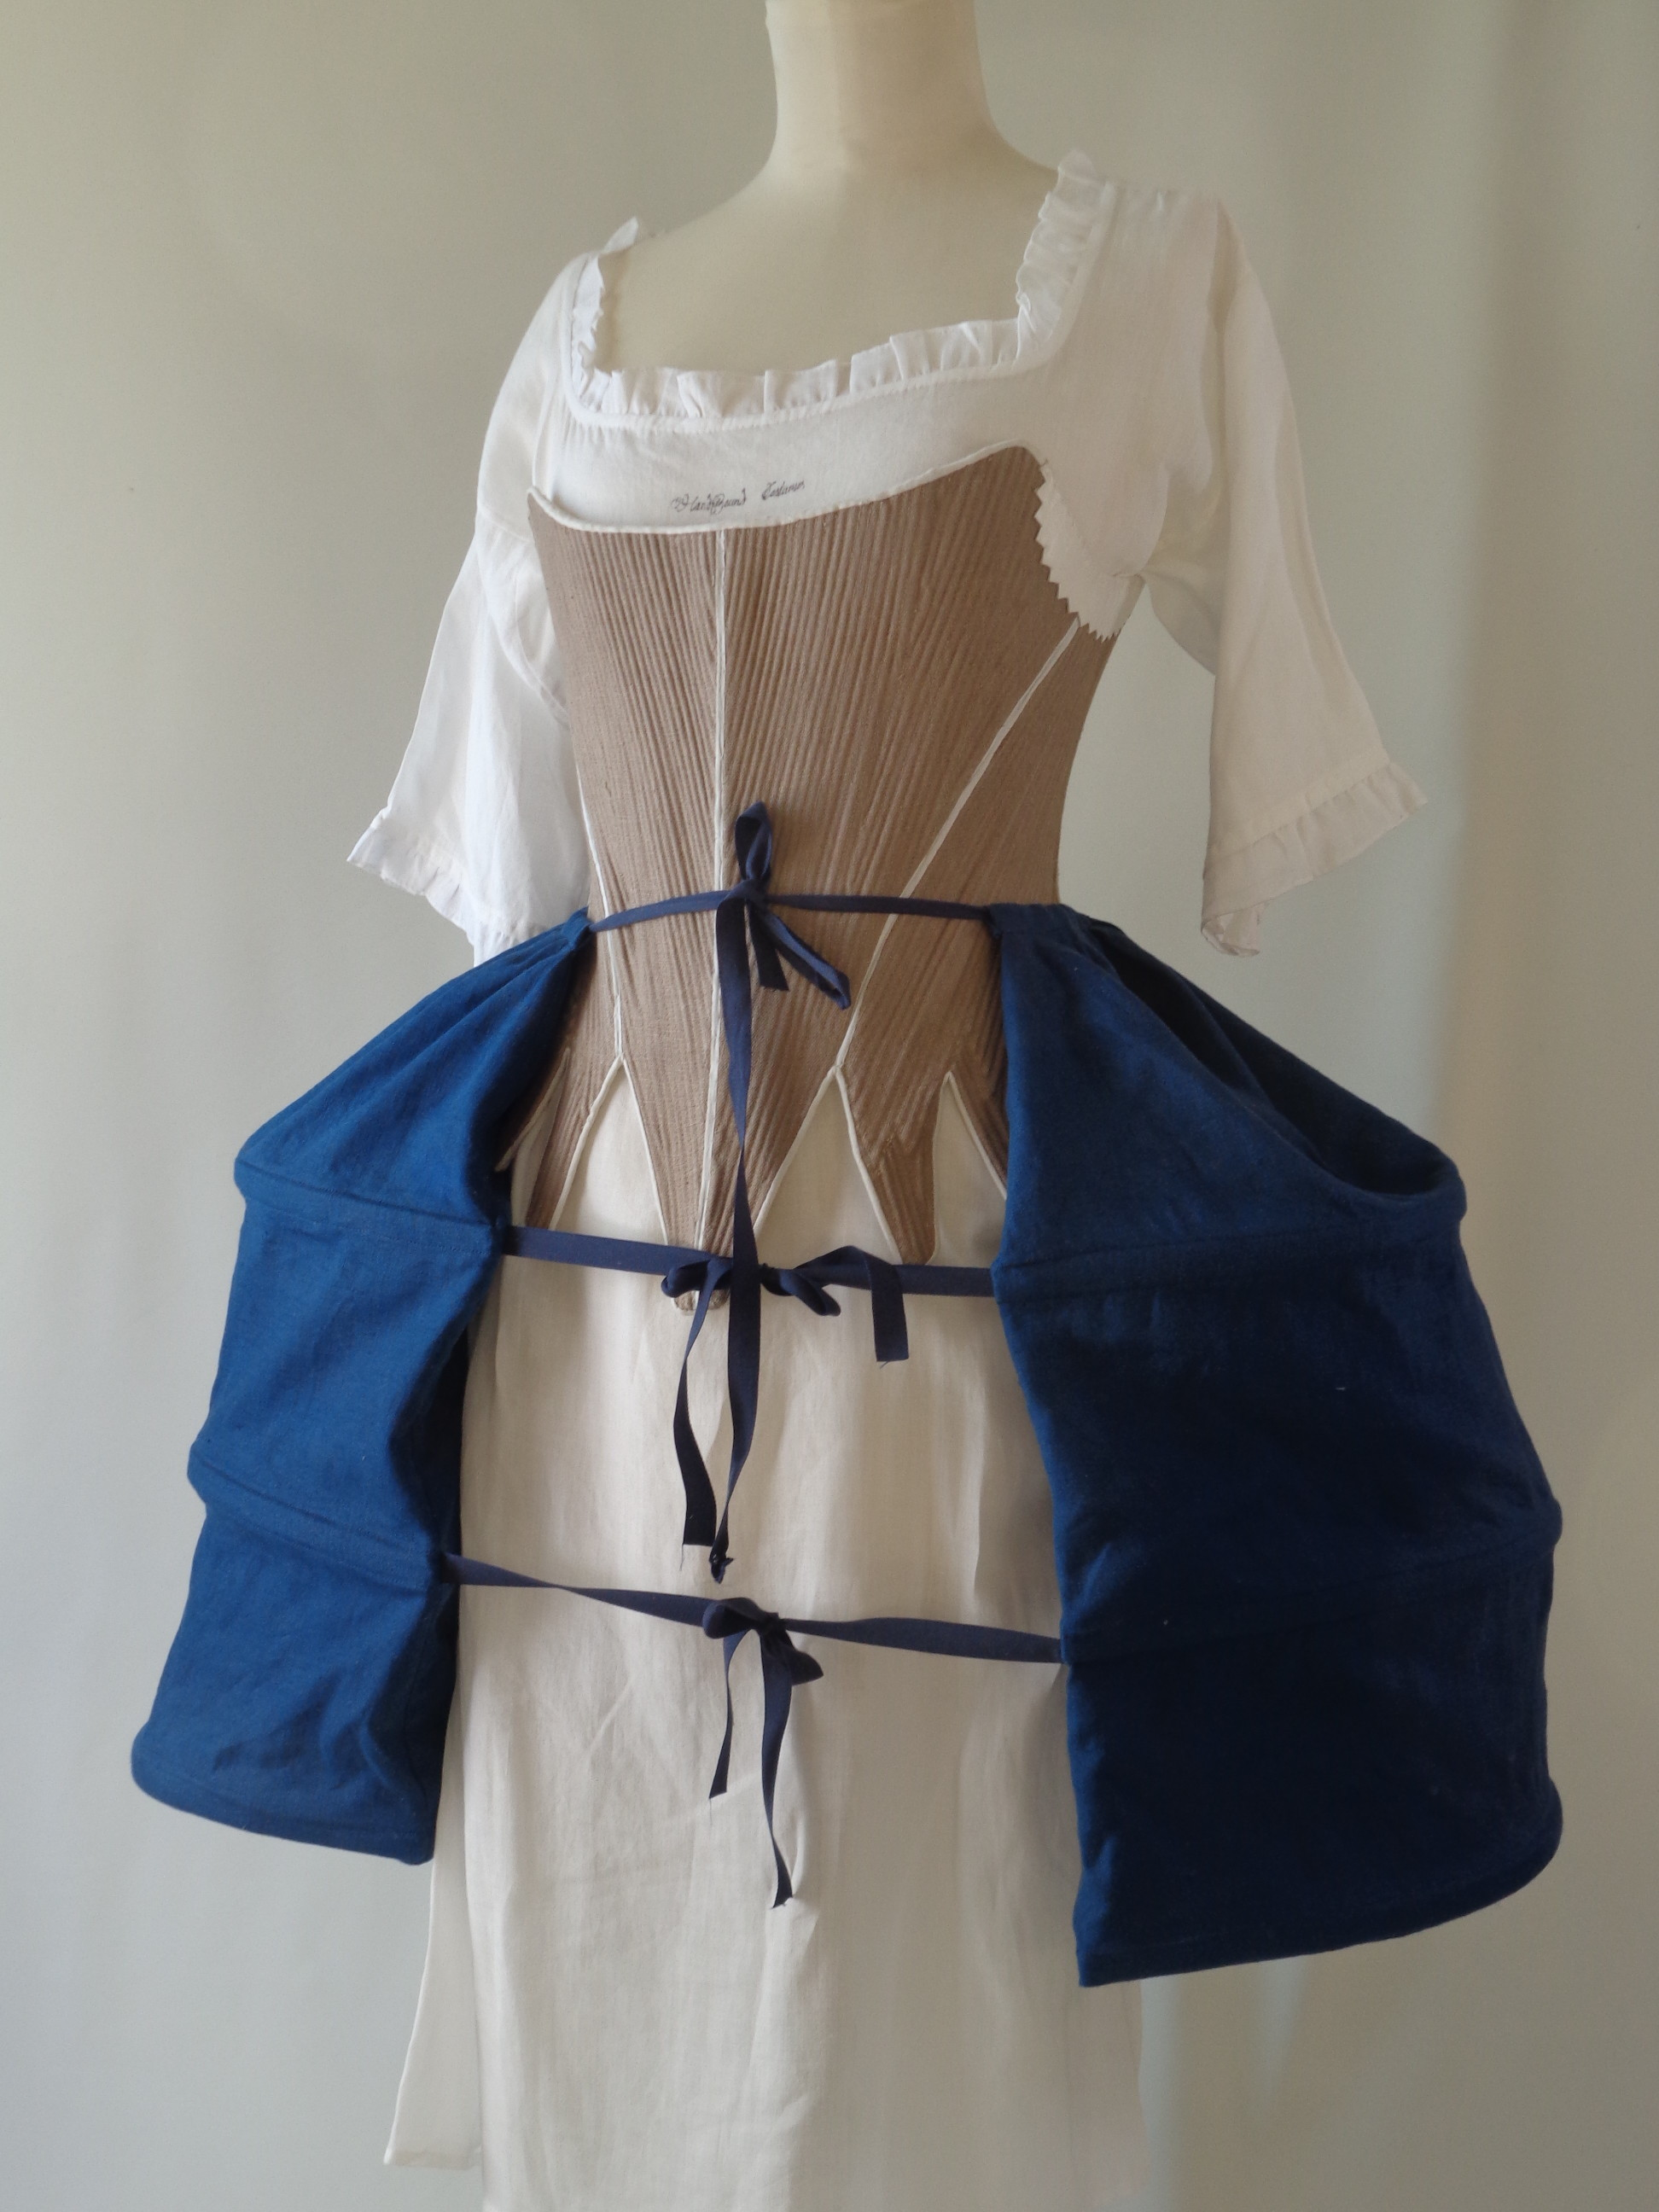 replica pocket hoops for reenactment, period costume for displays and theatre productions